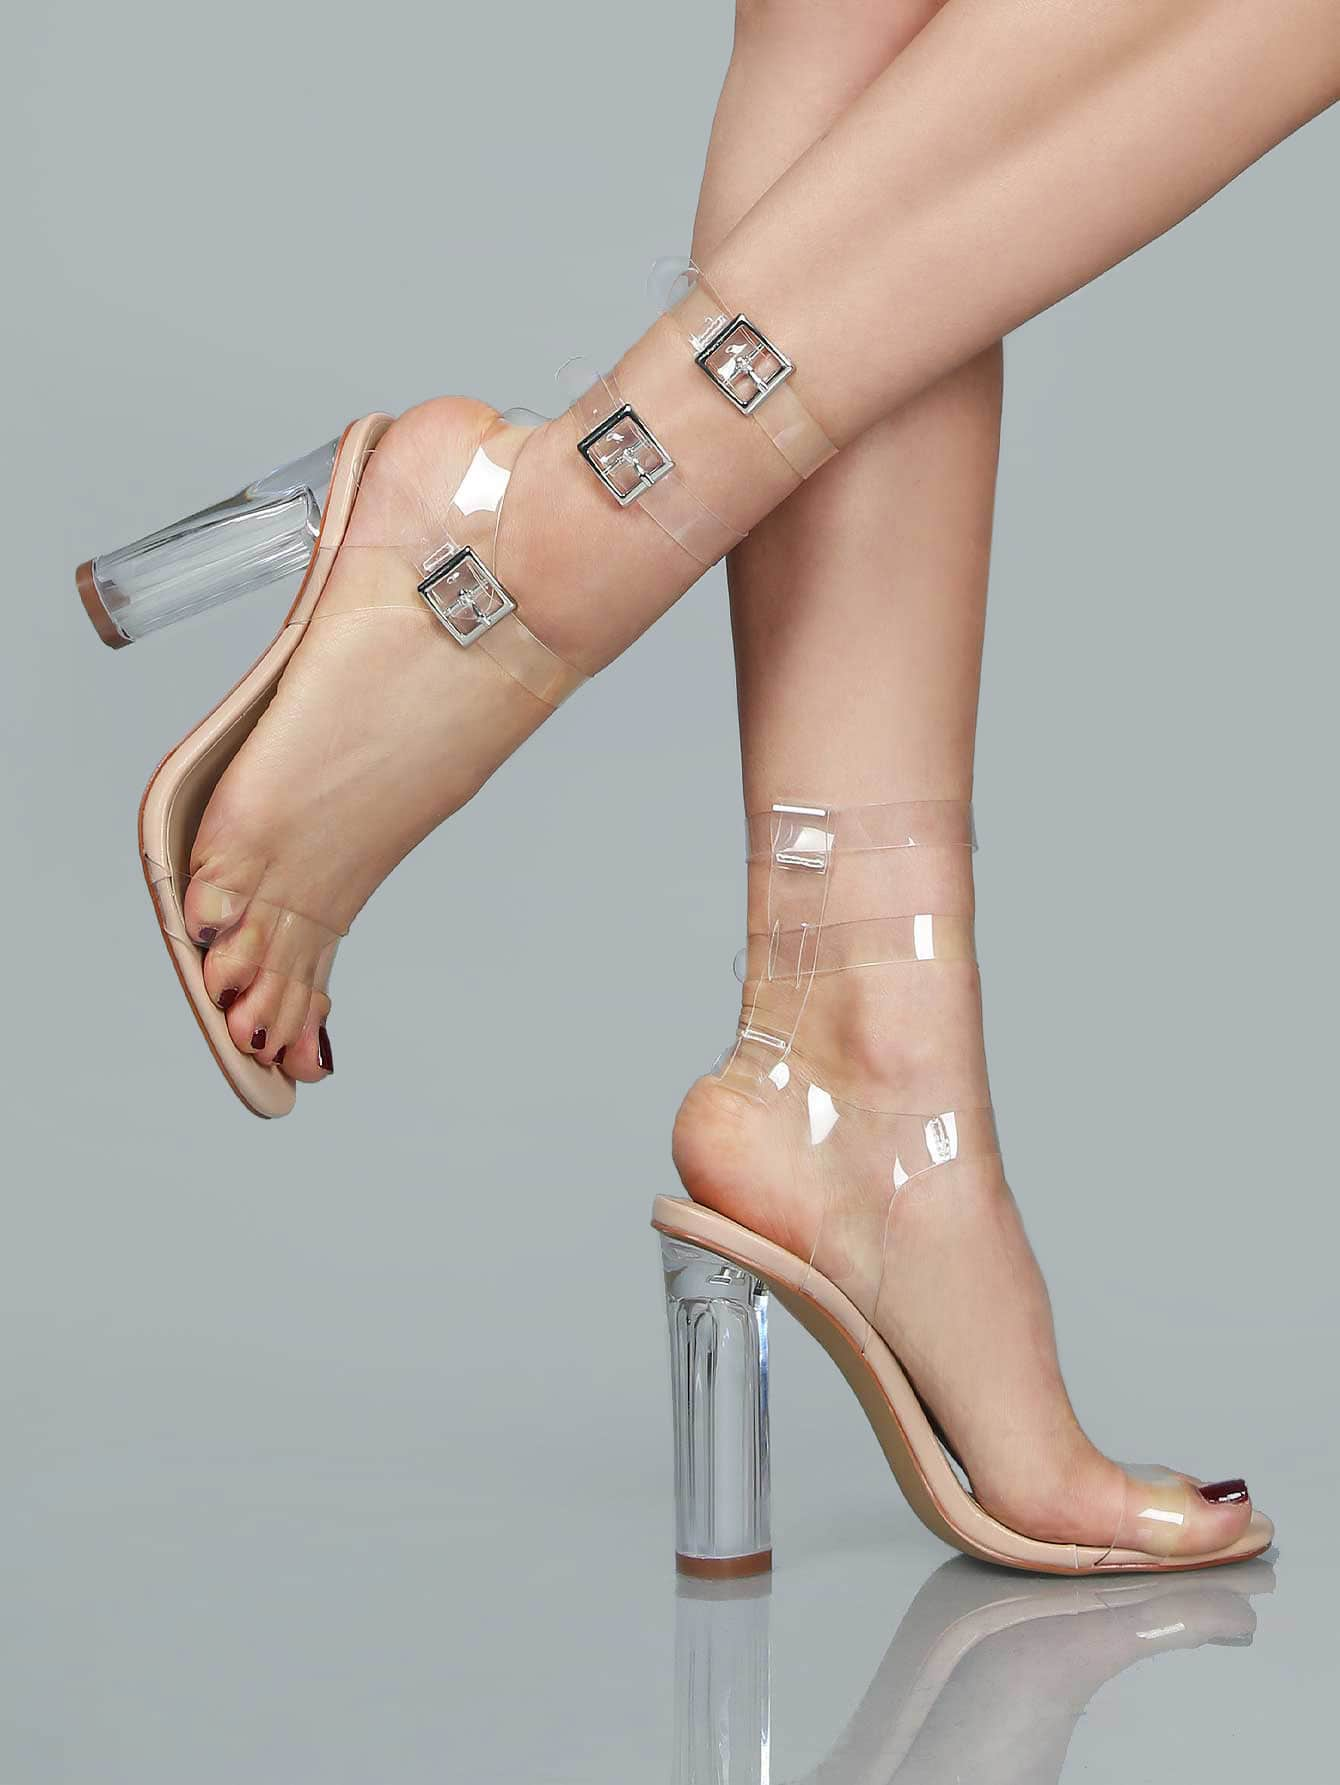 Clear Double Strap Chunk Heel Sandals NUDEClear Double Strap Chunk Heel Sandals NUDE<br><br>color: Nude<br>size: US10,US5.5,US6.5,US6,US7.5,US7,US8.5,US8,US9